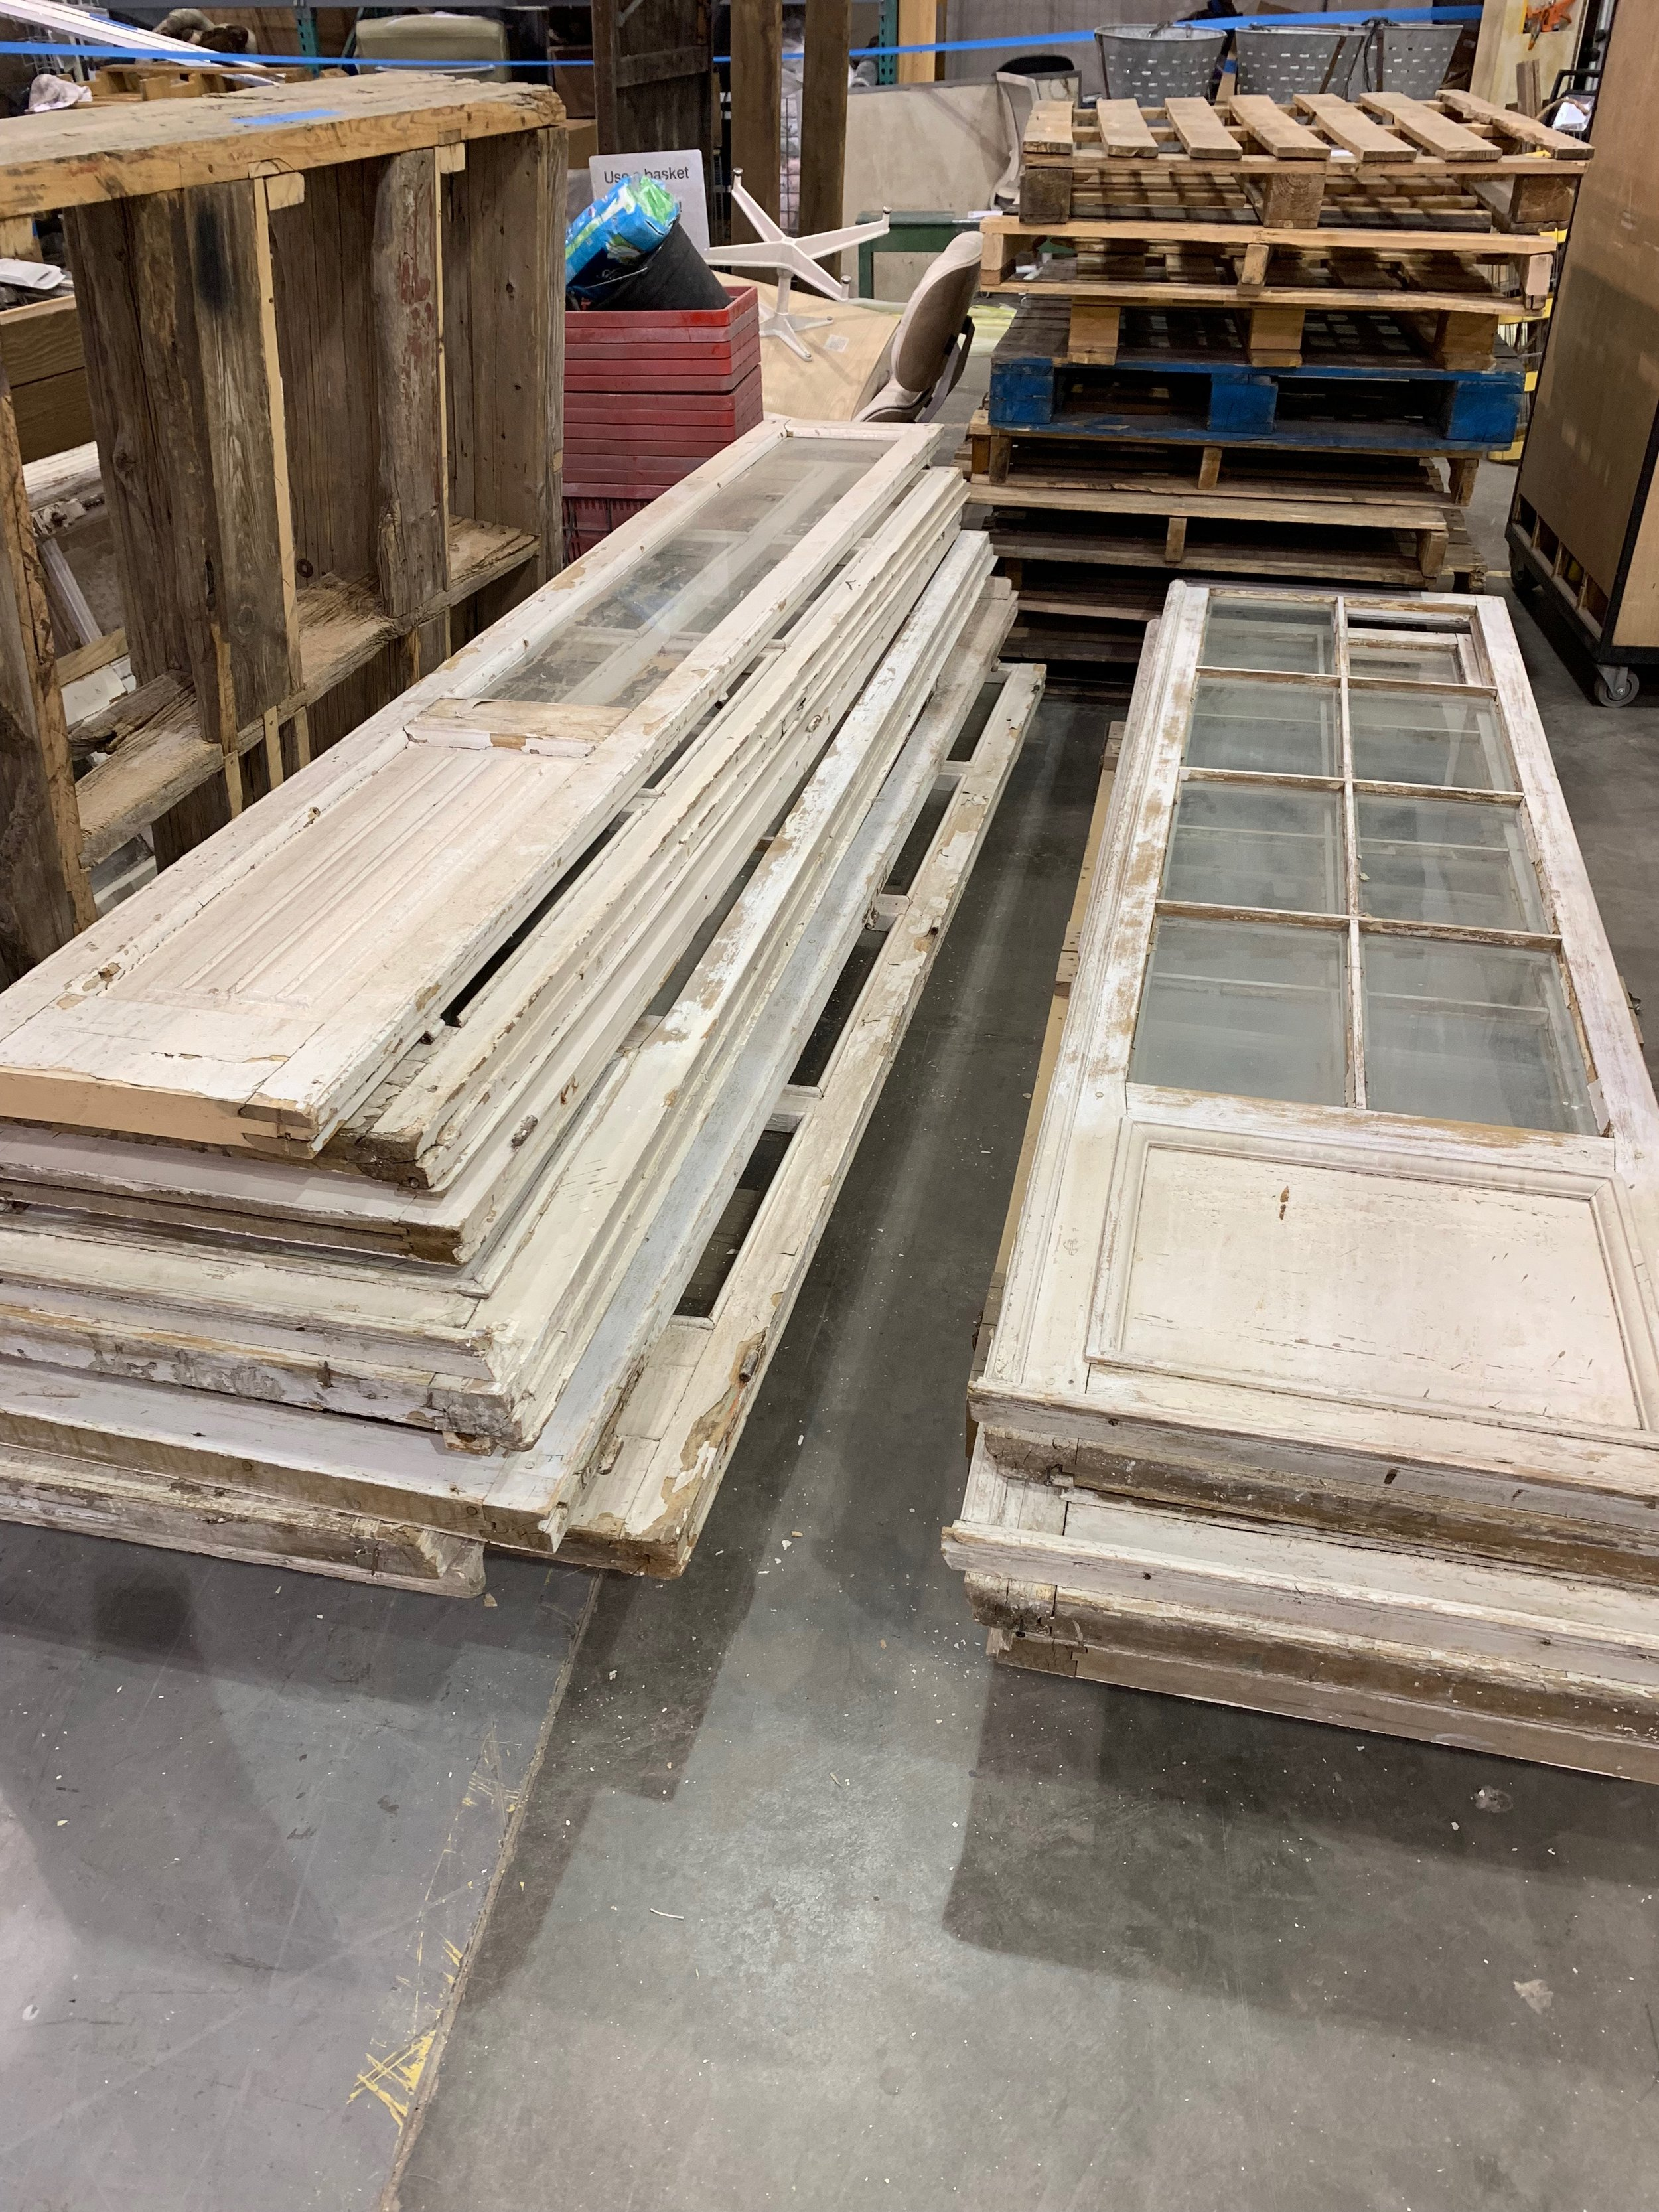 Take these glass windows and make your greenhouse or she shed! or use them as decorative accents for your walls. -